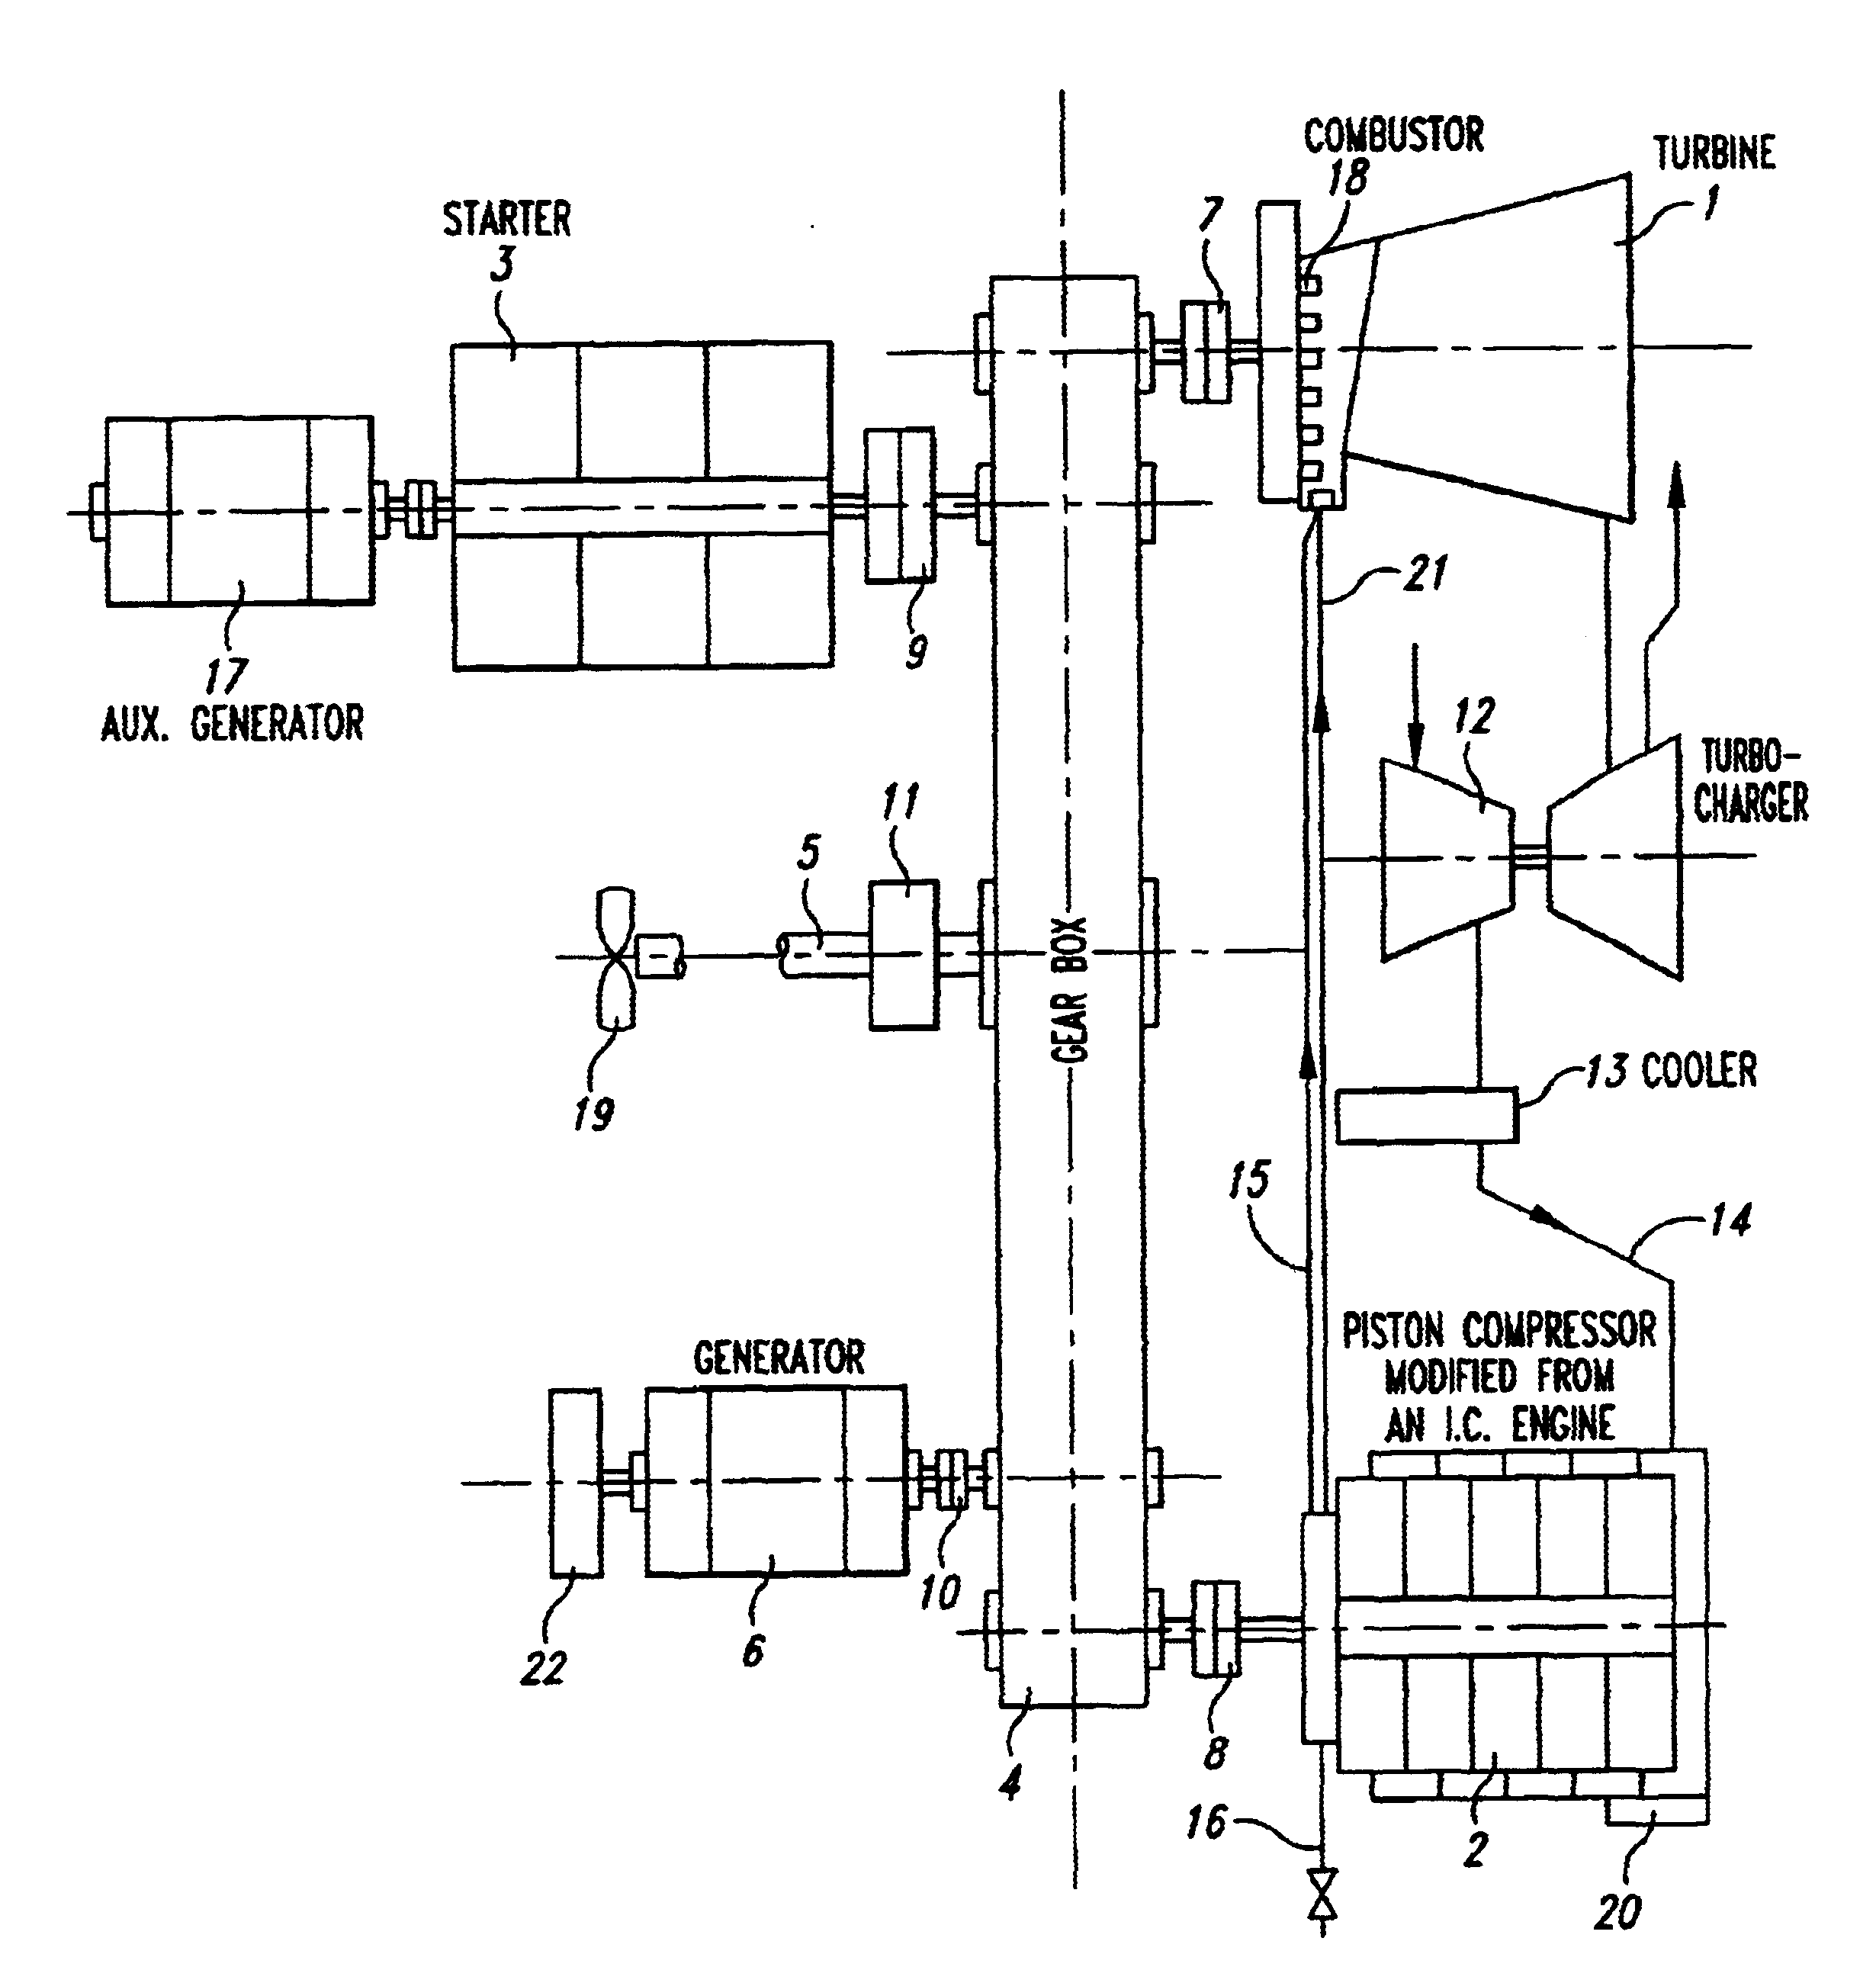 Electric Turbocharger Patents: High-pressure Gas-turbine Plant Using